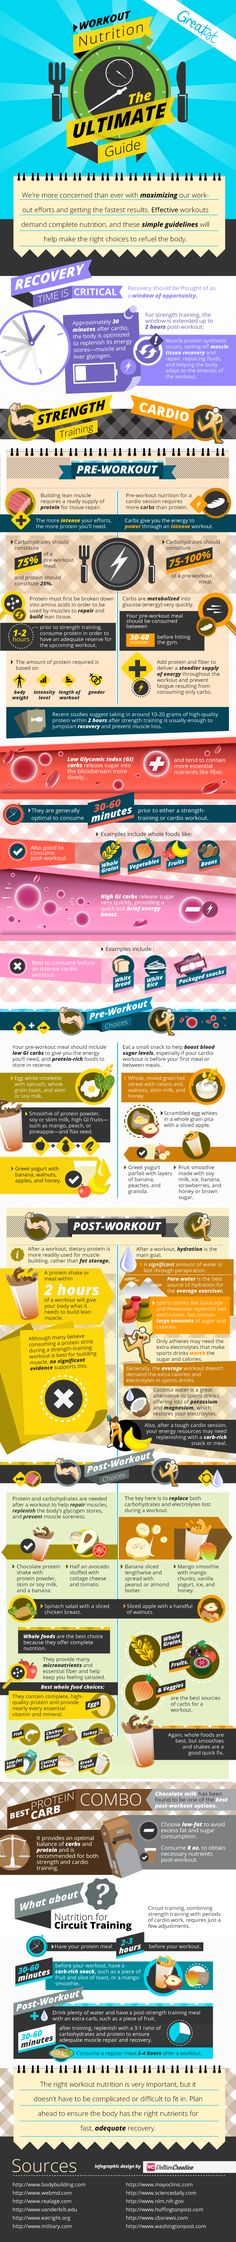 The Complete Guide to Workout Nutriton [Infographic]